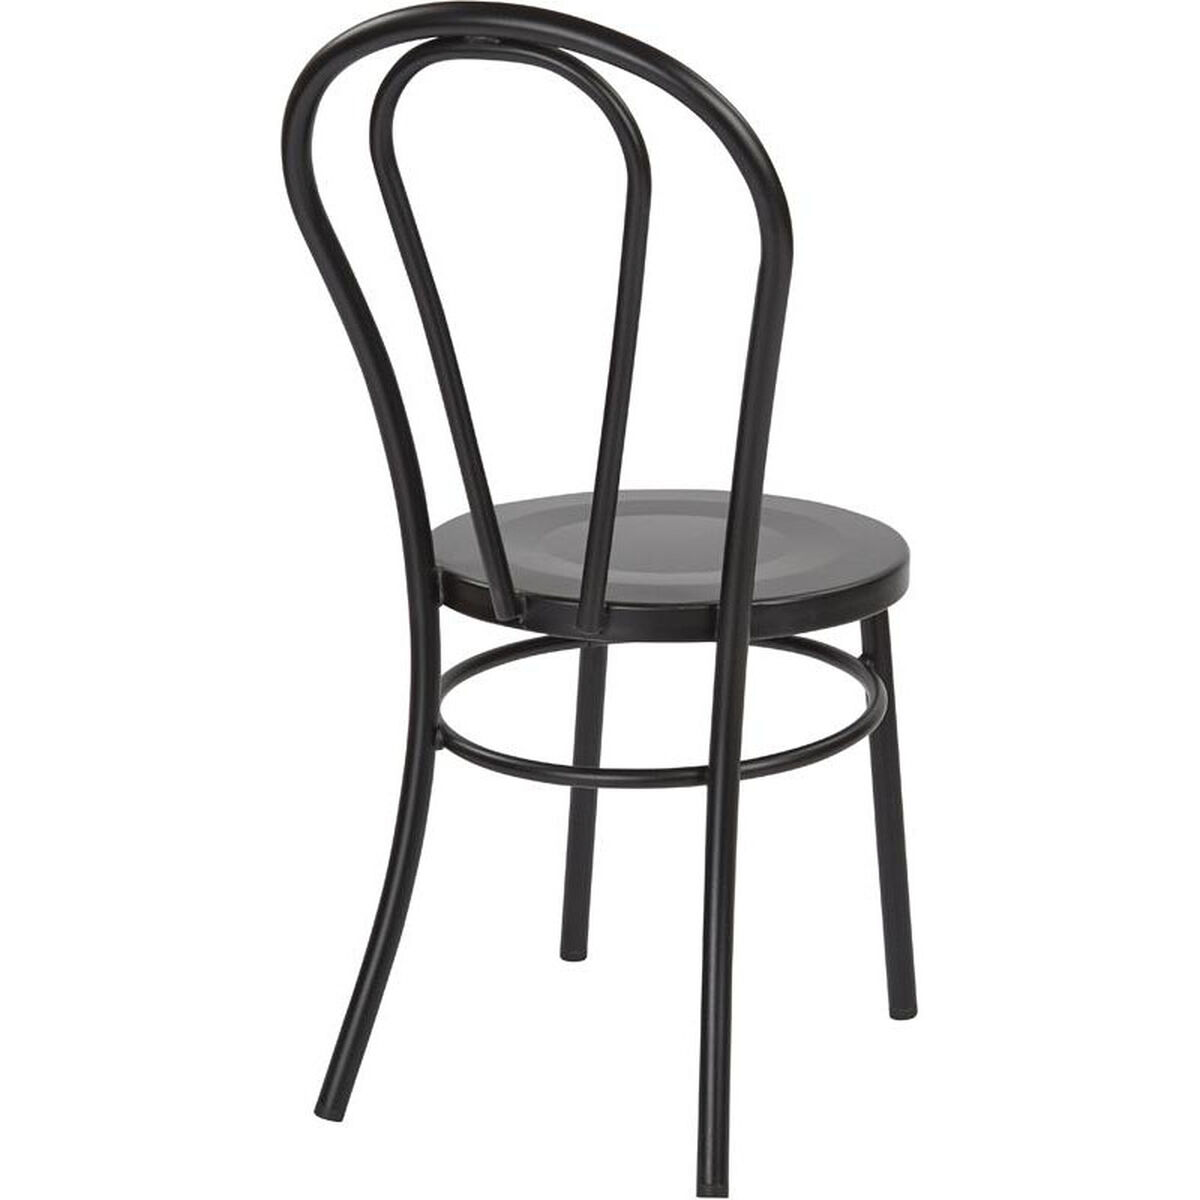 Set Of 2 Odessa Dining Chair Od2918a2 C230